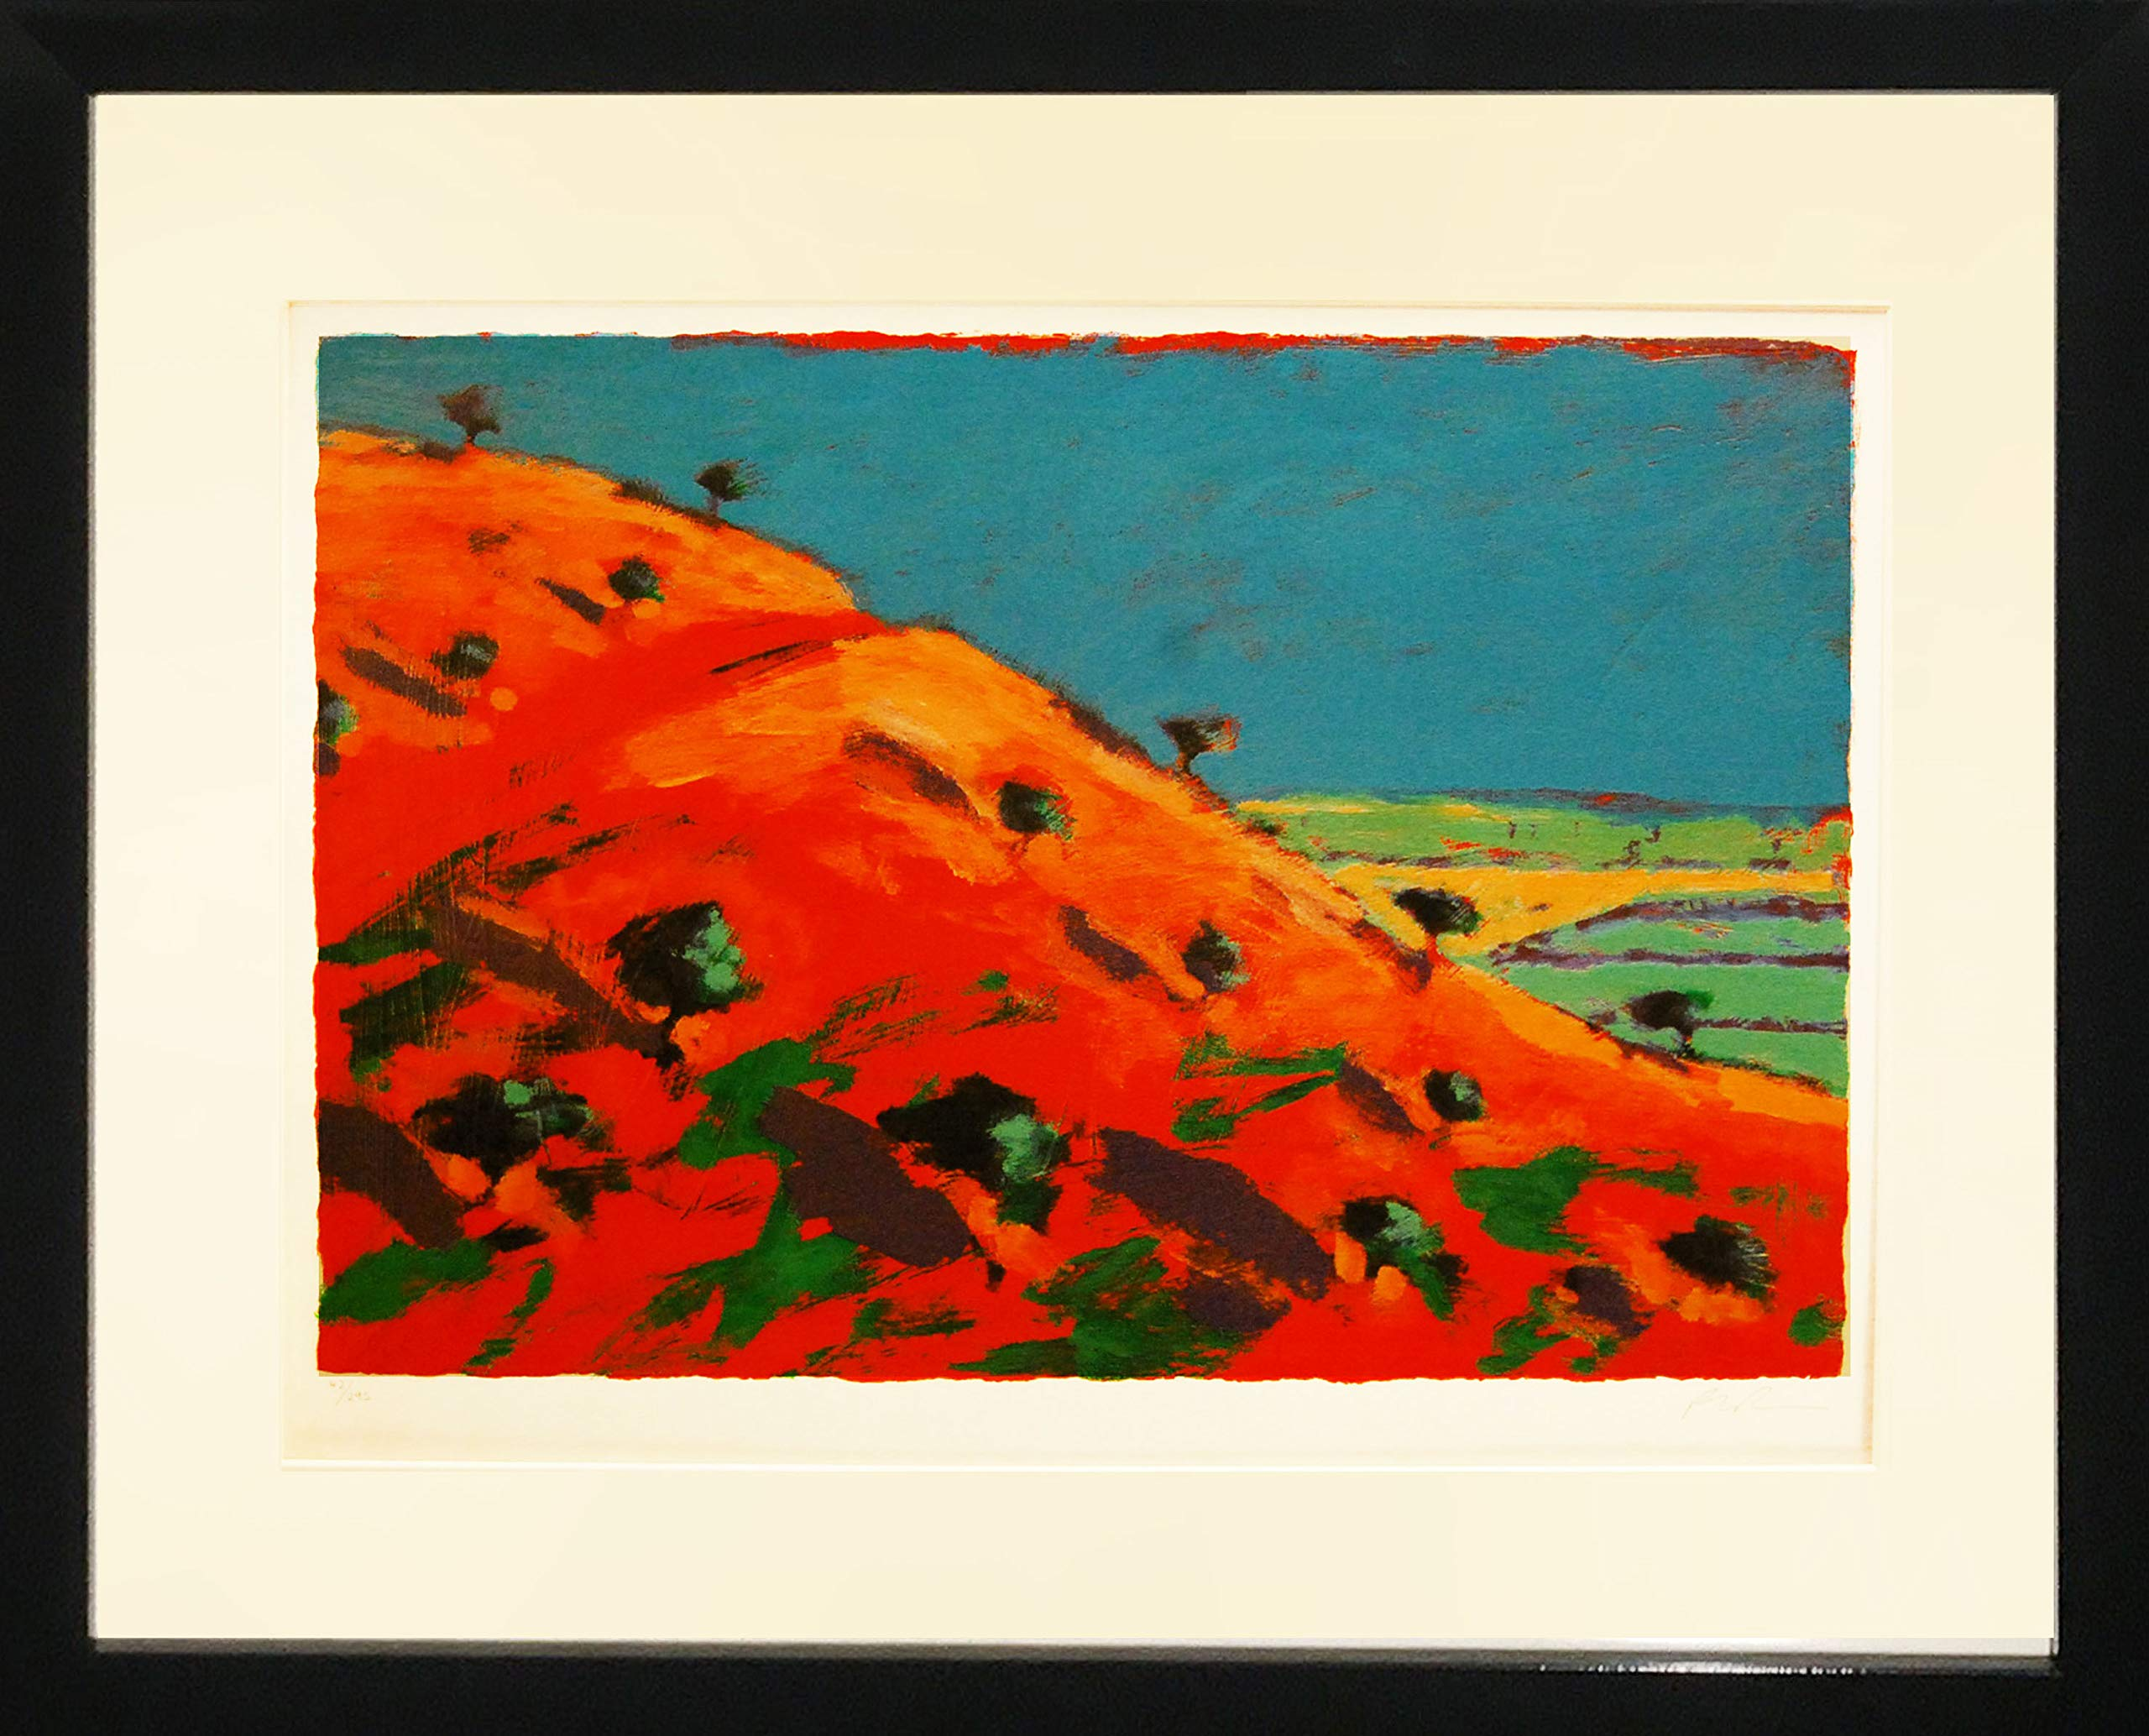 Framed Art''North Hill'' by Paul Powis by